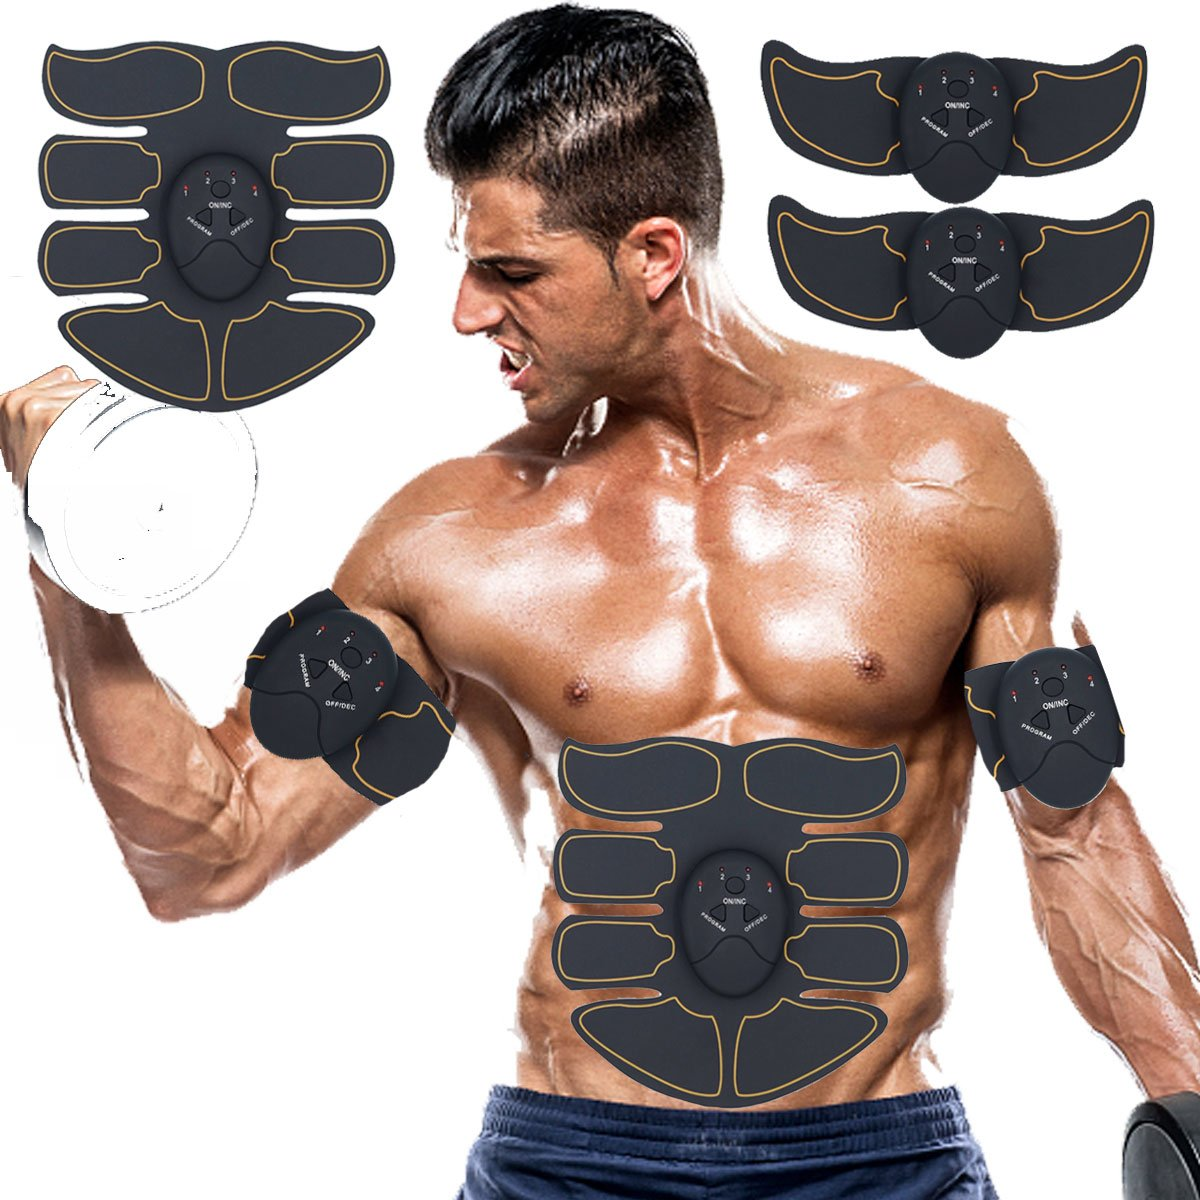 SPORTMAO Abs Stimulator Muscle Trainer Ultimate Abs Stimulator Ab Stimulator for Men Women Abdominal Work Out Ads Power Fitness Abs Muscle Training Gear Workout Equipment Portable Stimulator Abs Belt by SPORTMAO